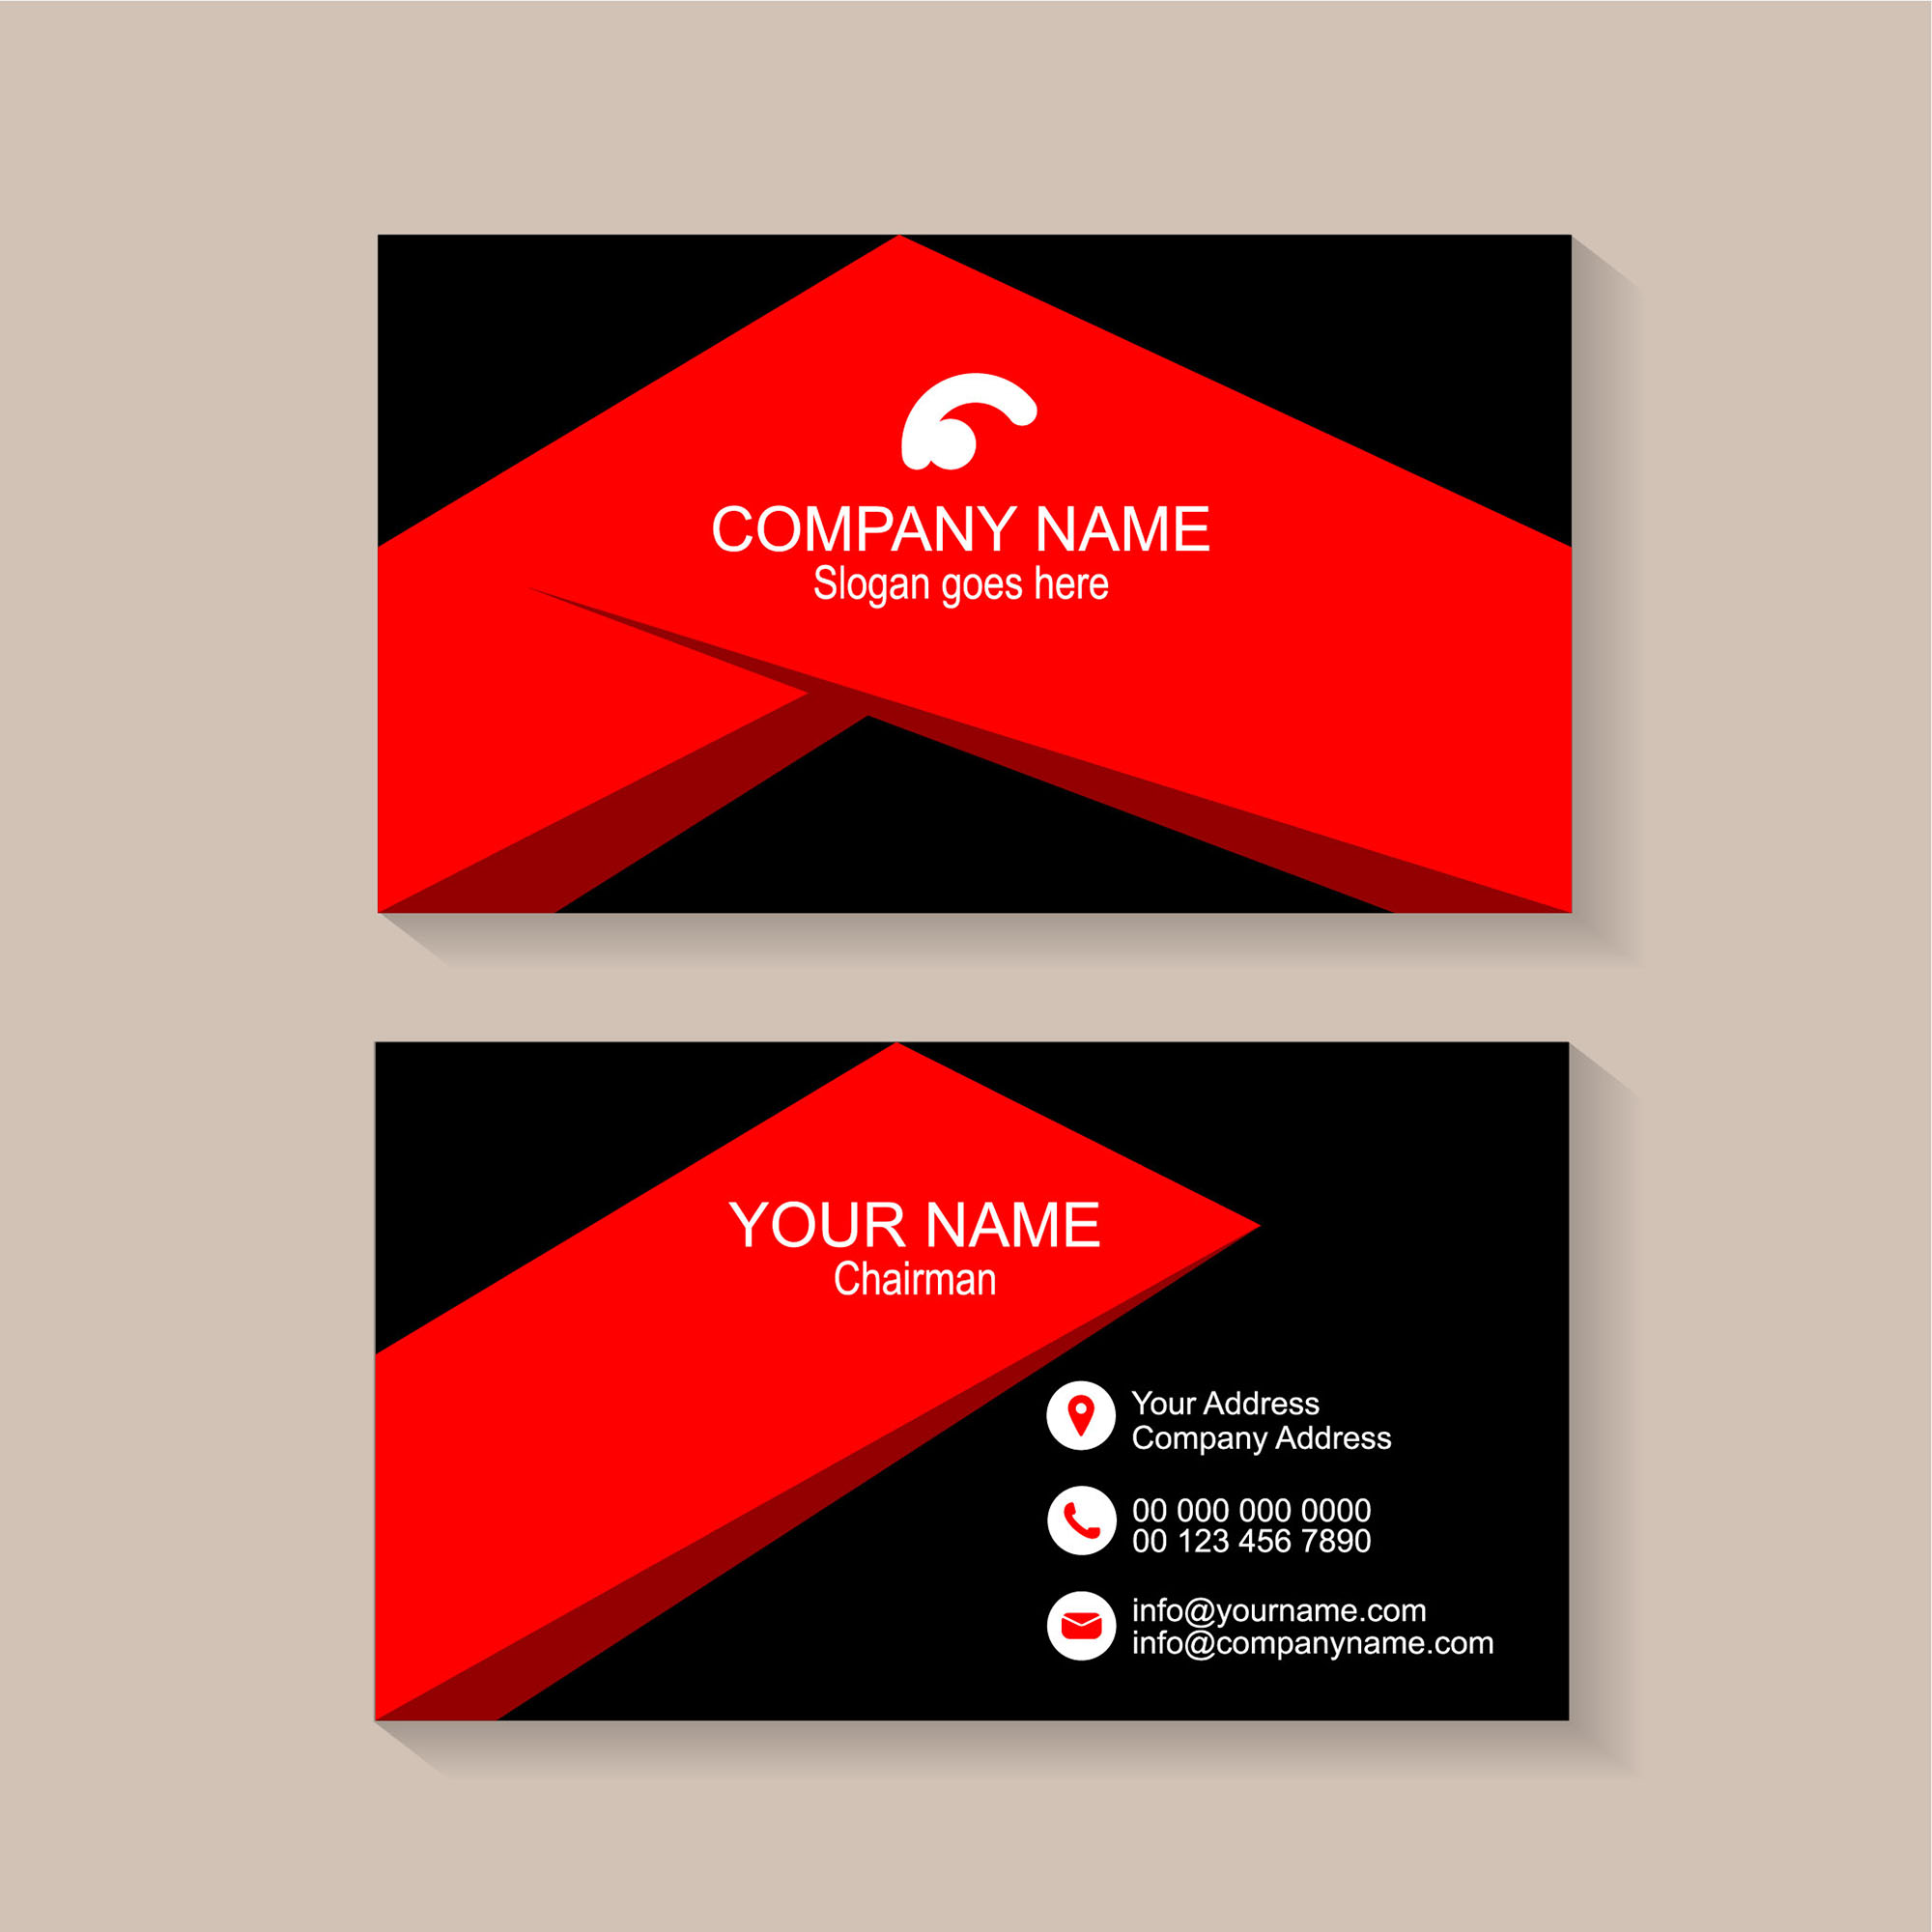 Business Card Template Design Free Download - Wisxi.com